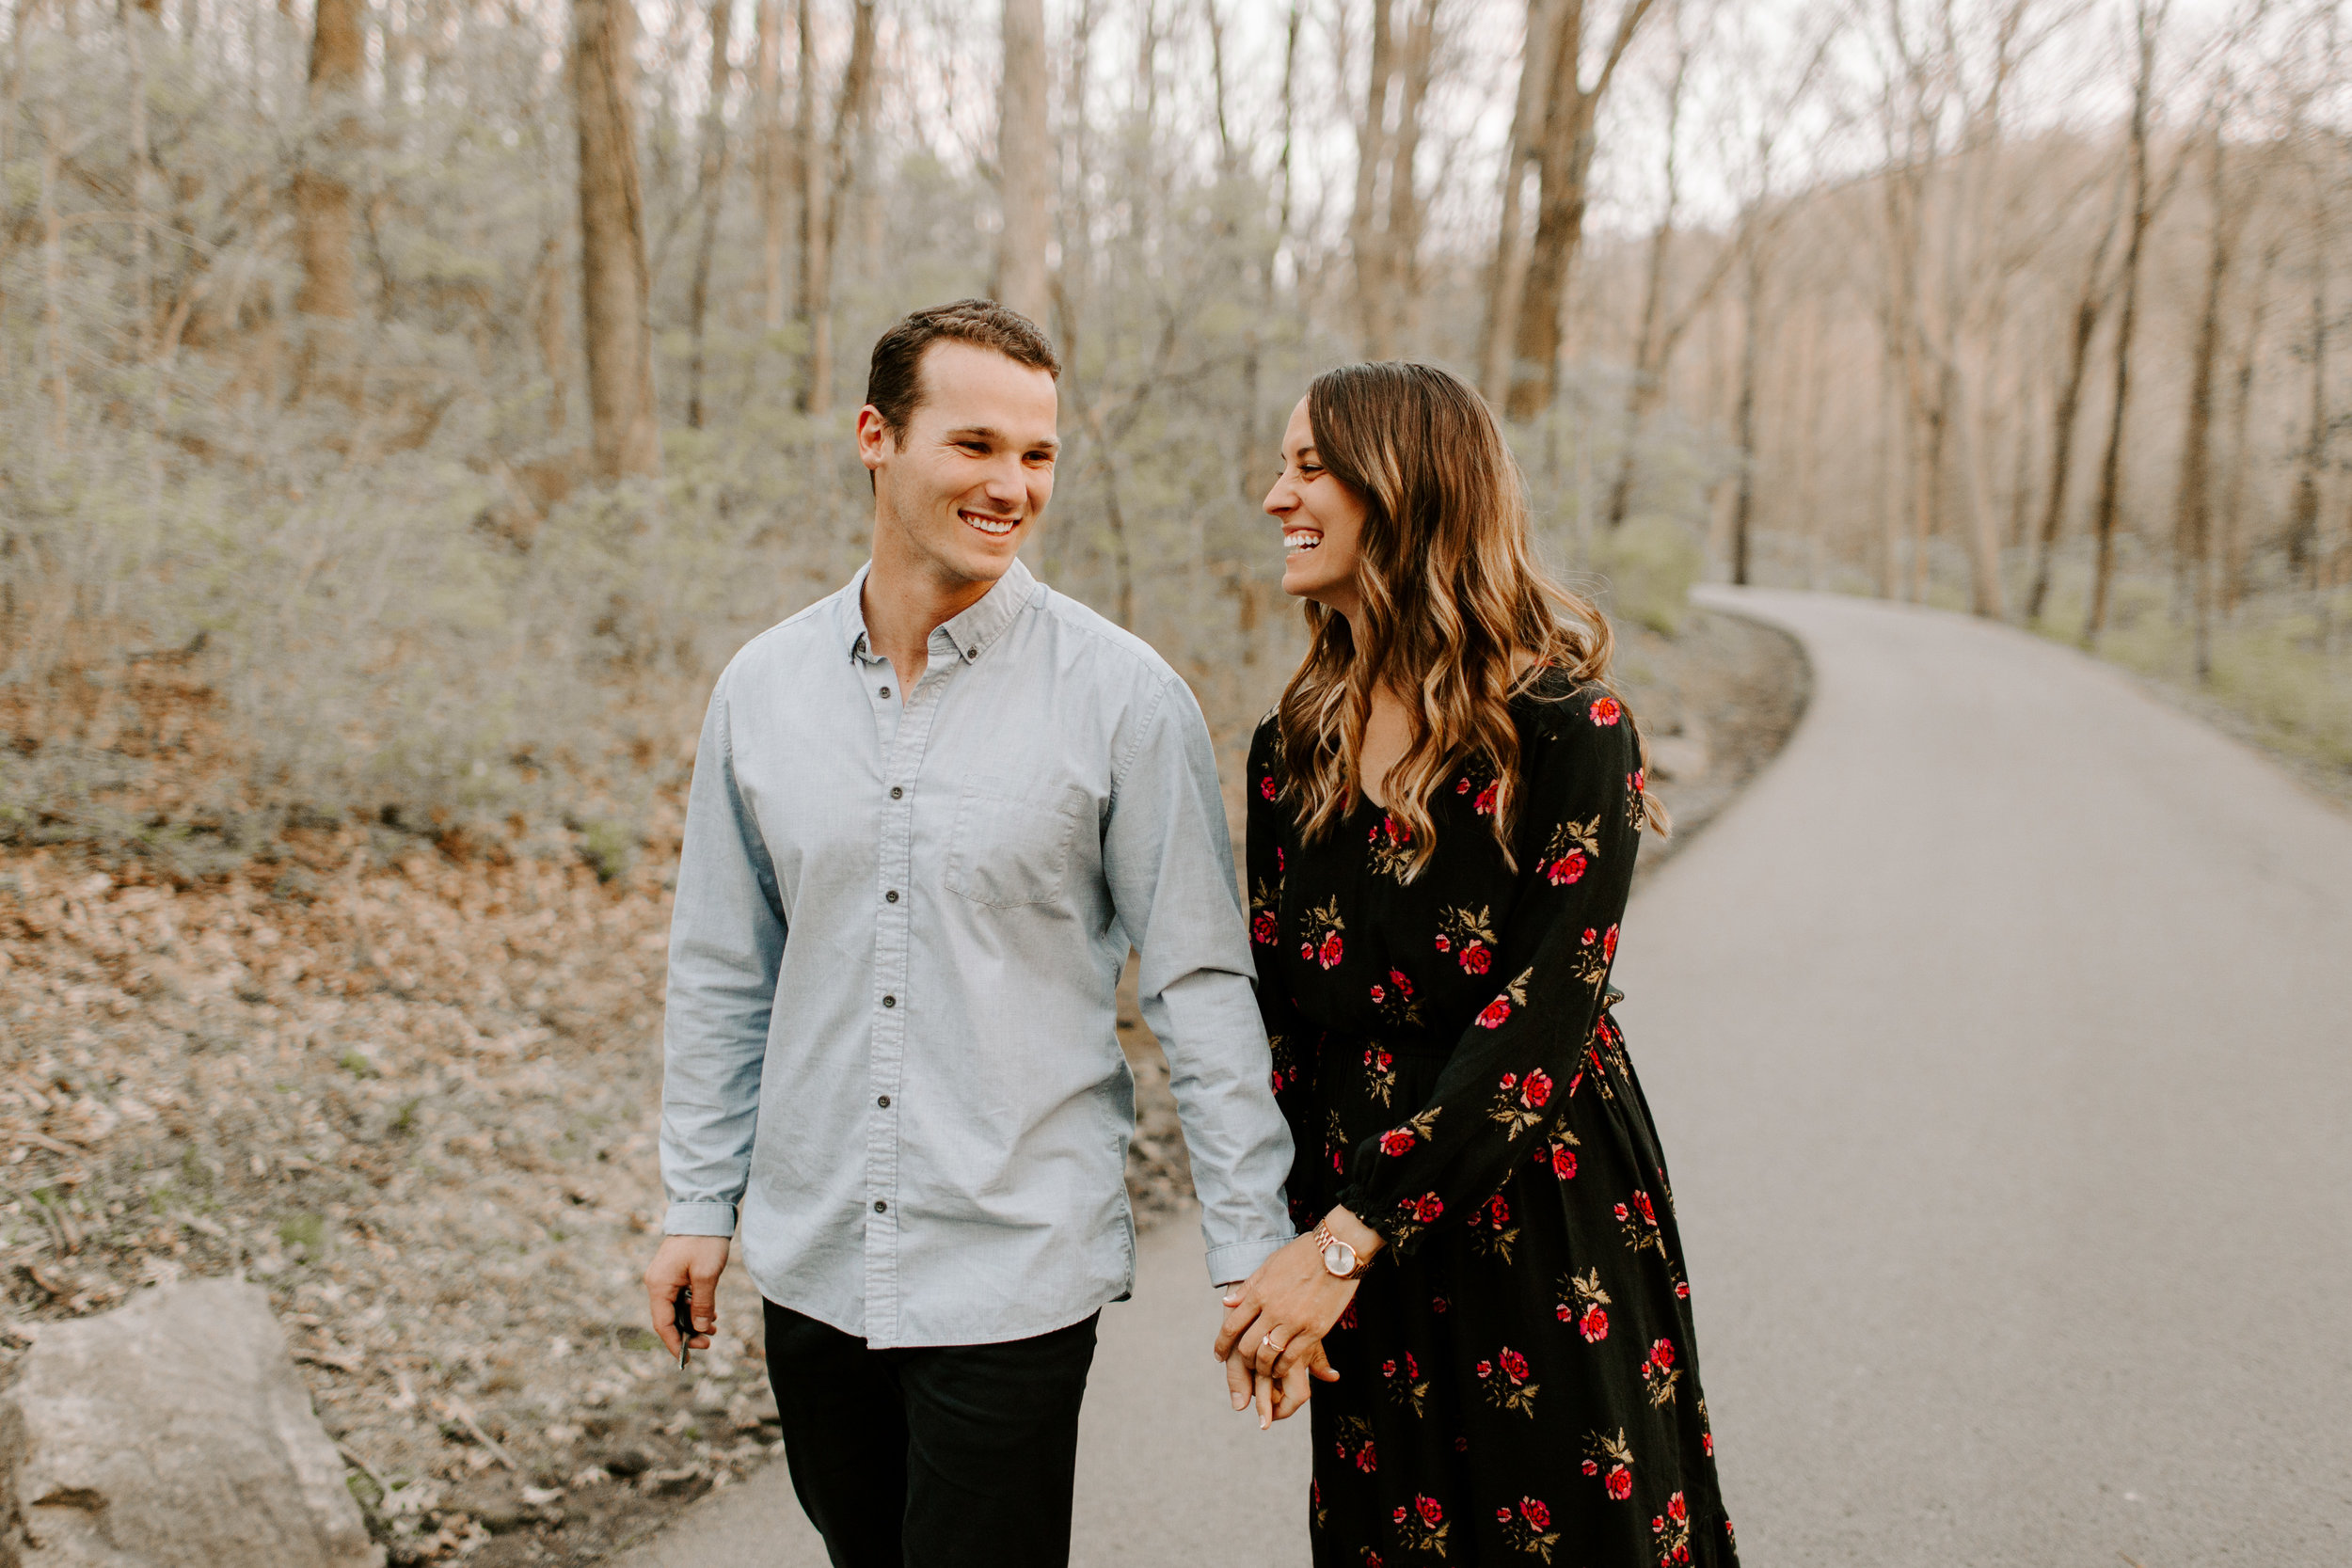 2018.03.16_kayleematt_nashville_engagement_elissavossphotography_previews_29.jpg